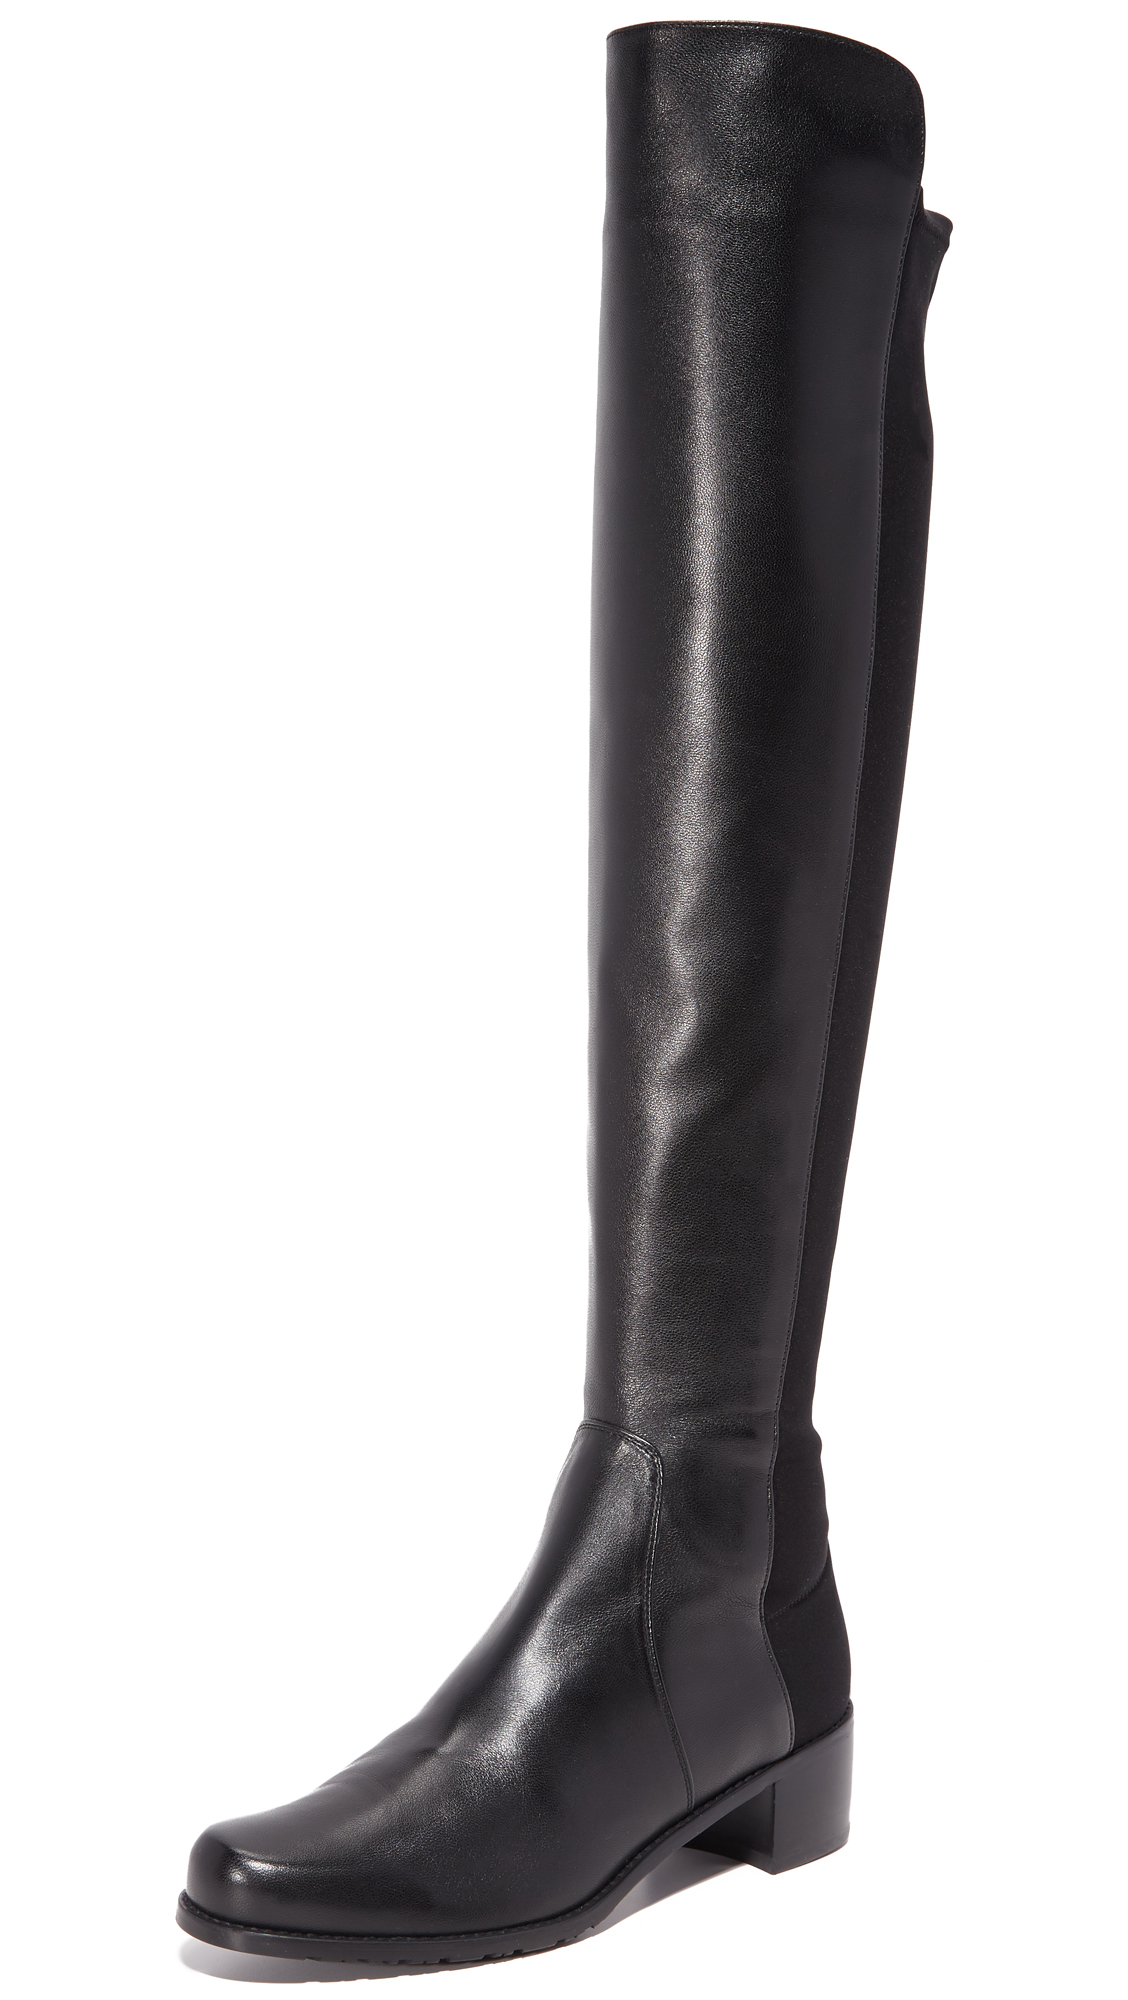 A tonal panel of soft elastic contours the silhouette of these over the knee boots, constructed in smooth leather. Rubber sole. Leather: Goatskin. Imported, China. This item cannot be gift boxed. Measurements Heel: 1.5in / 38mm Shaft: 21